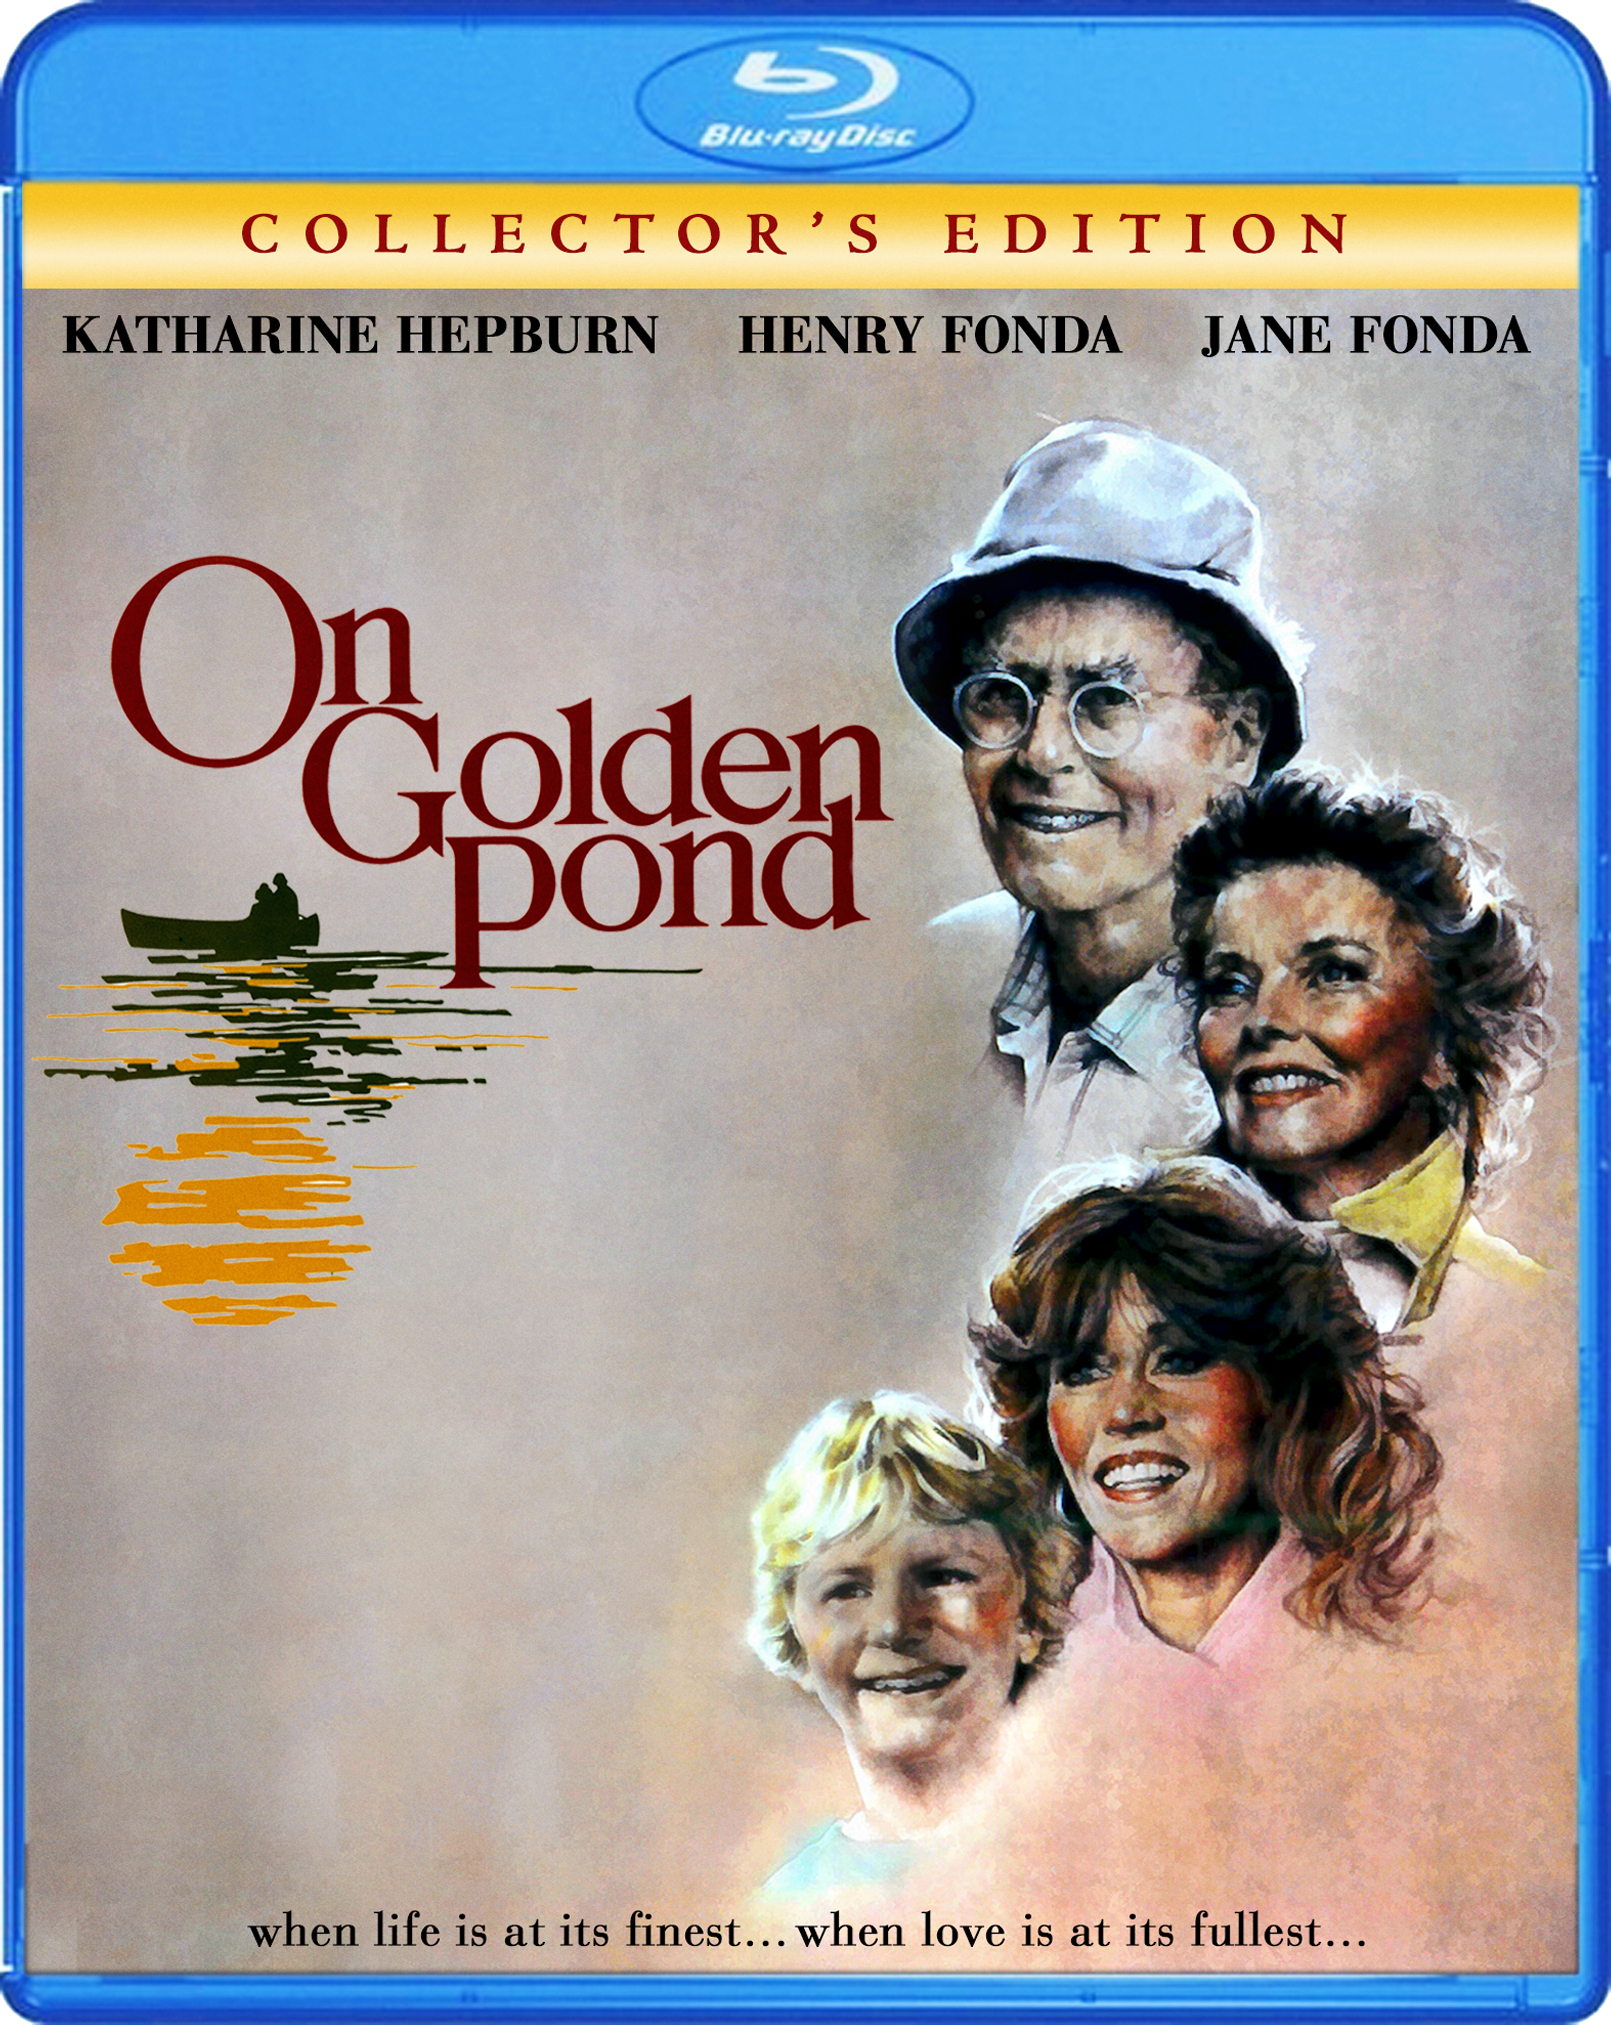 On Golden Pond [Collector's Edition]